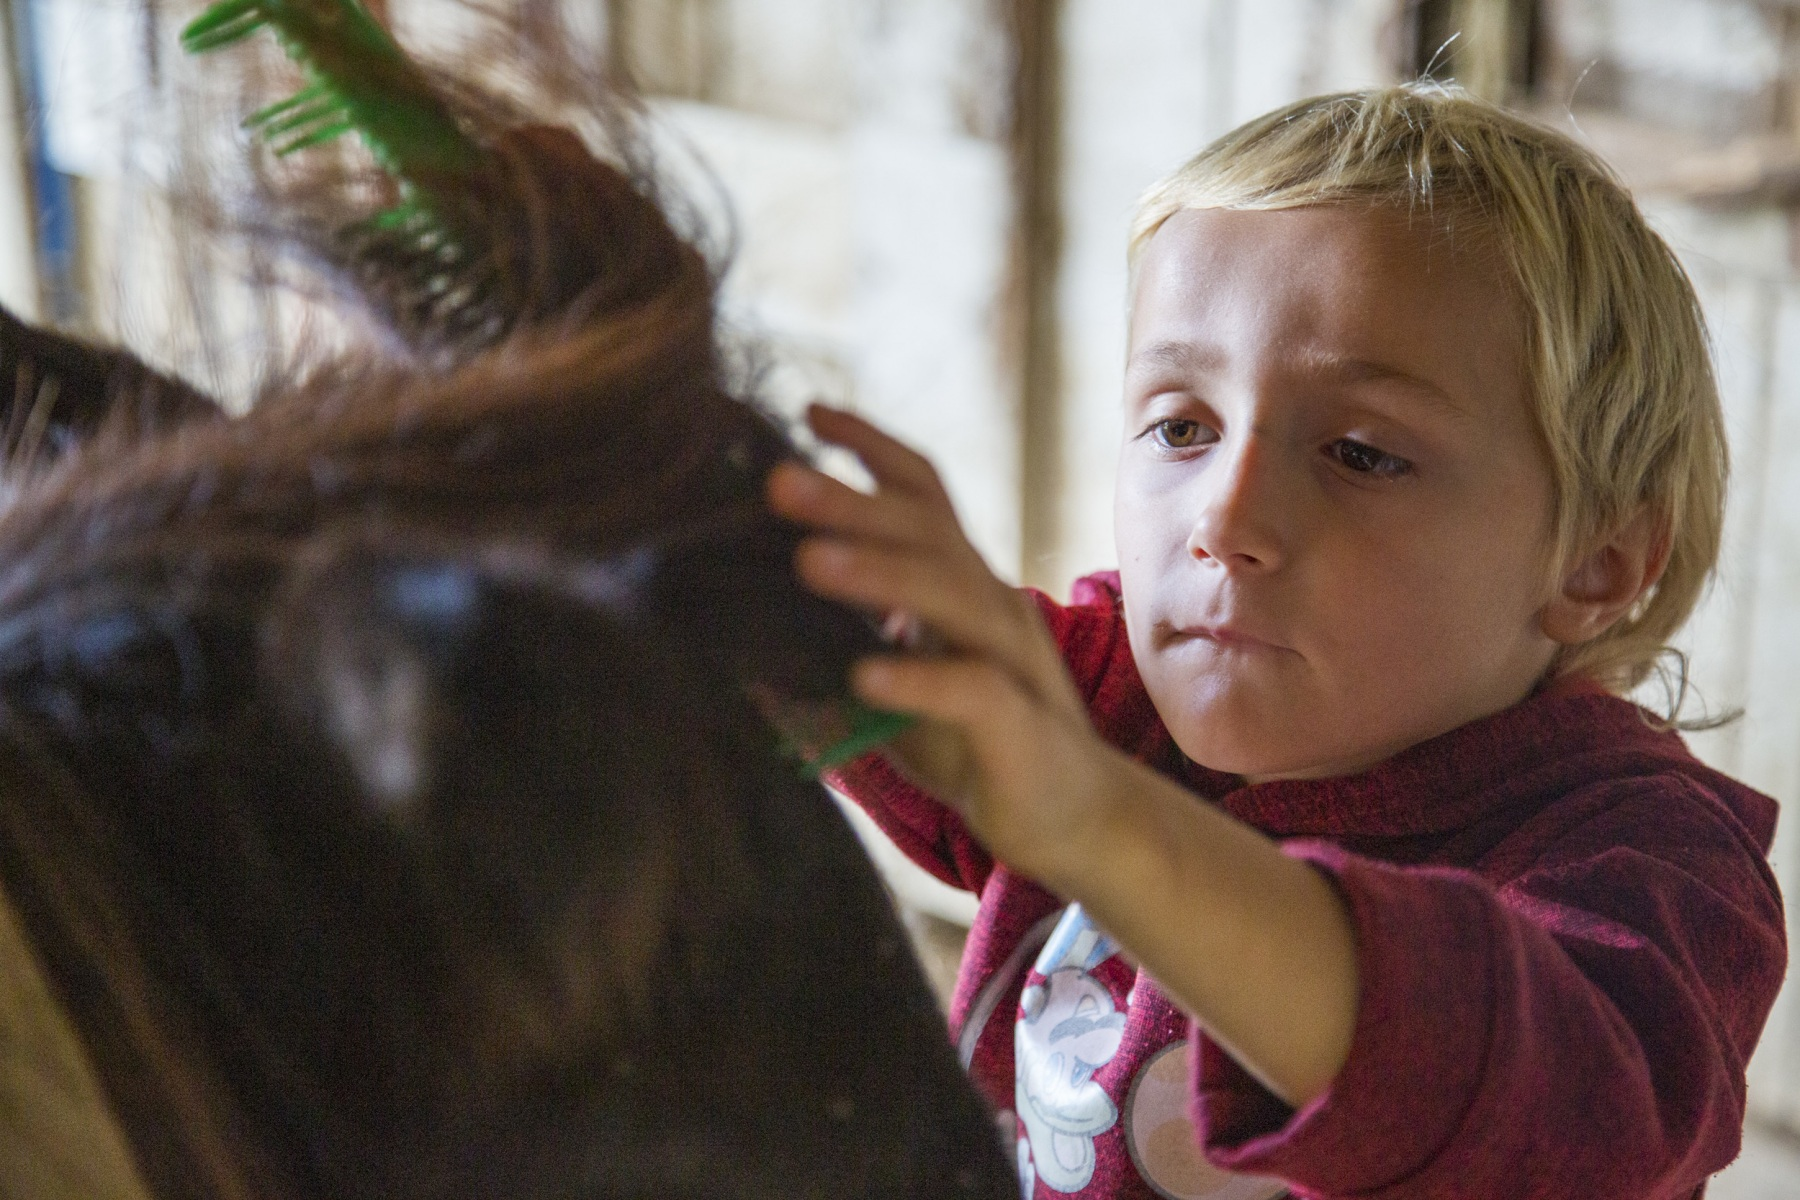 Jack, 6, combs a pony's mane on a family horse farm in Chesterhill, Ohio on September 14, 2020. Jack and his two older sisters come to the farm for free horseback riding lessons while they are not attending school in-person during the COVID-19 pandemic.